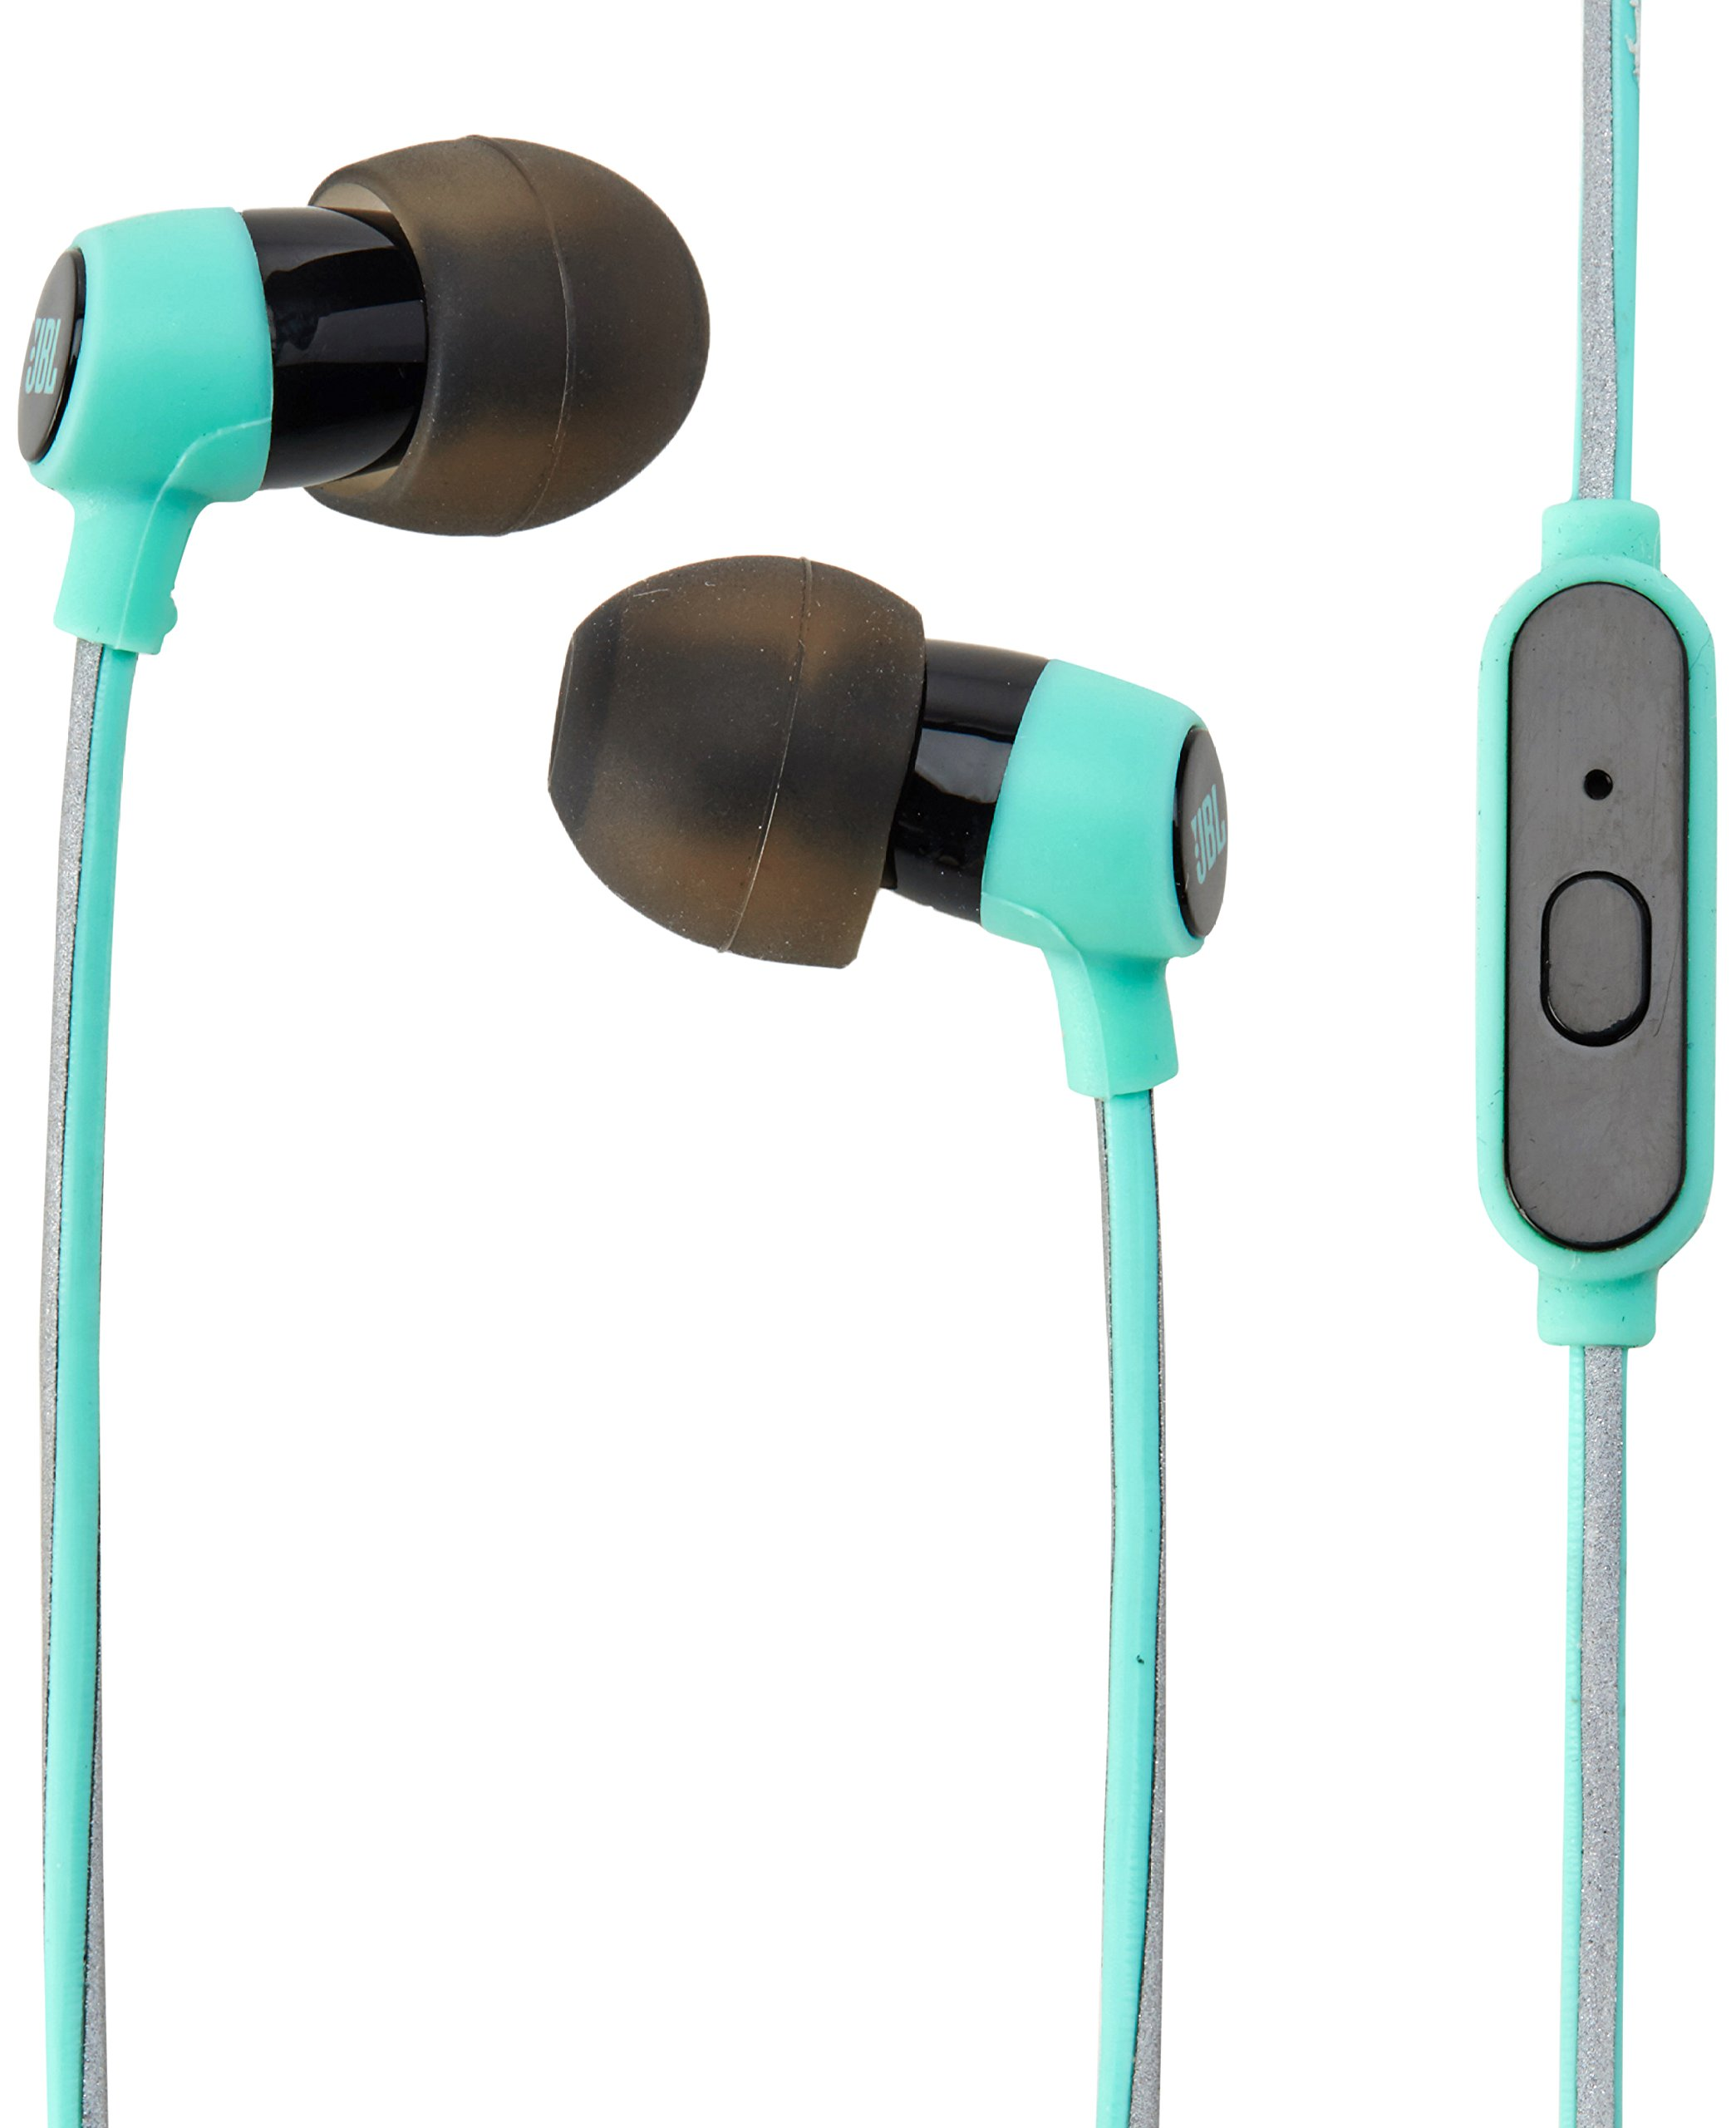 33d8f251f8e Galleon - JBL Reflect Mini In-Ear Headphones 3.5mm Stereo Wired Sweatproof  Earbud With 1 Button Remote And Mic, Teal